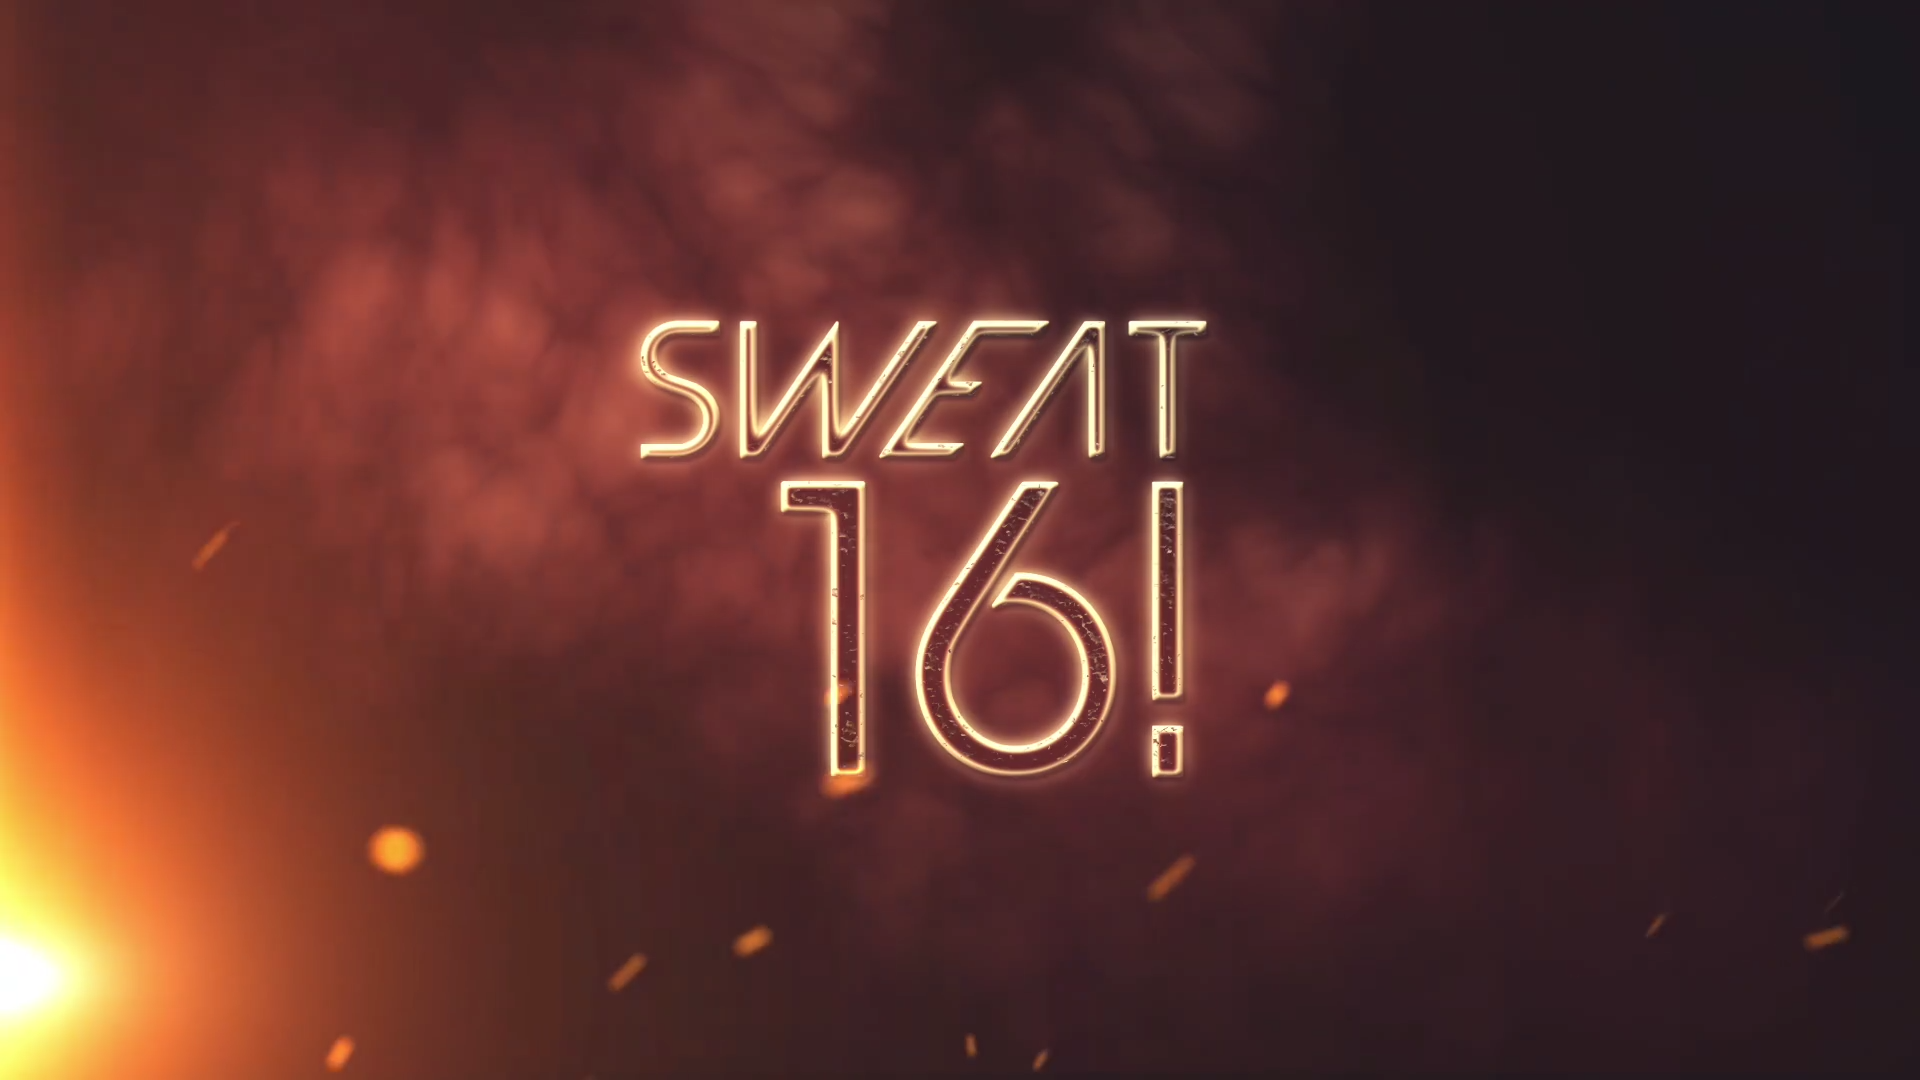 Font for SWEAT16!?